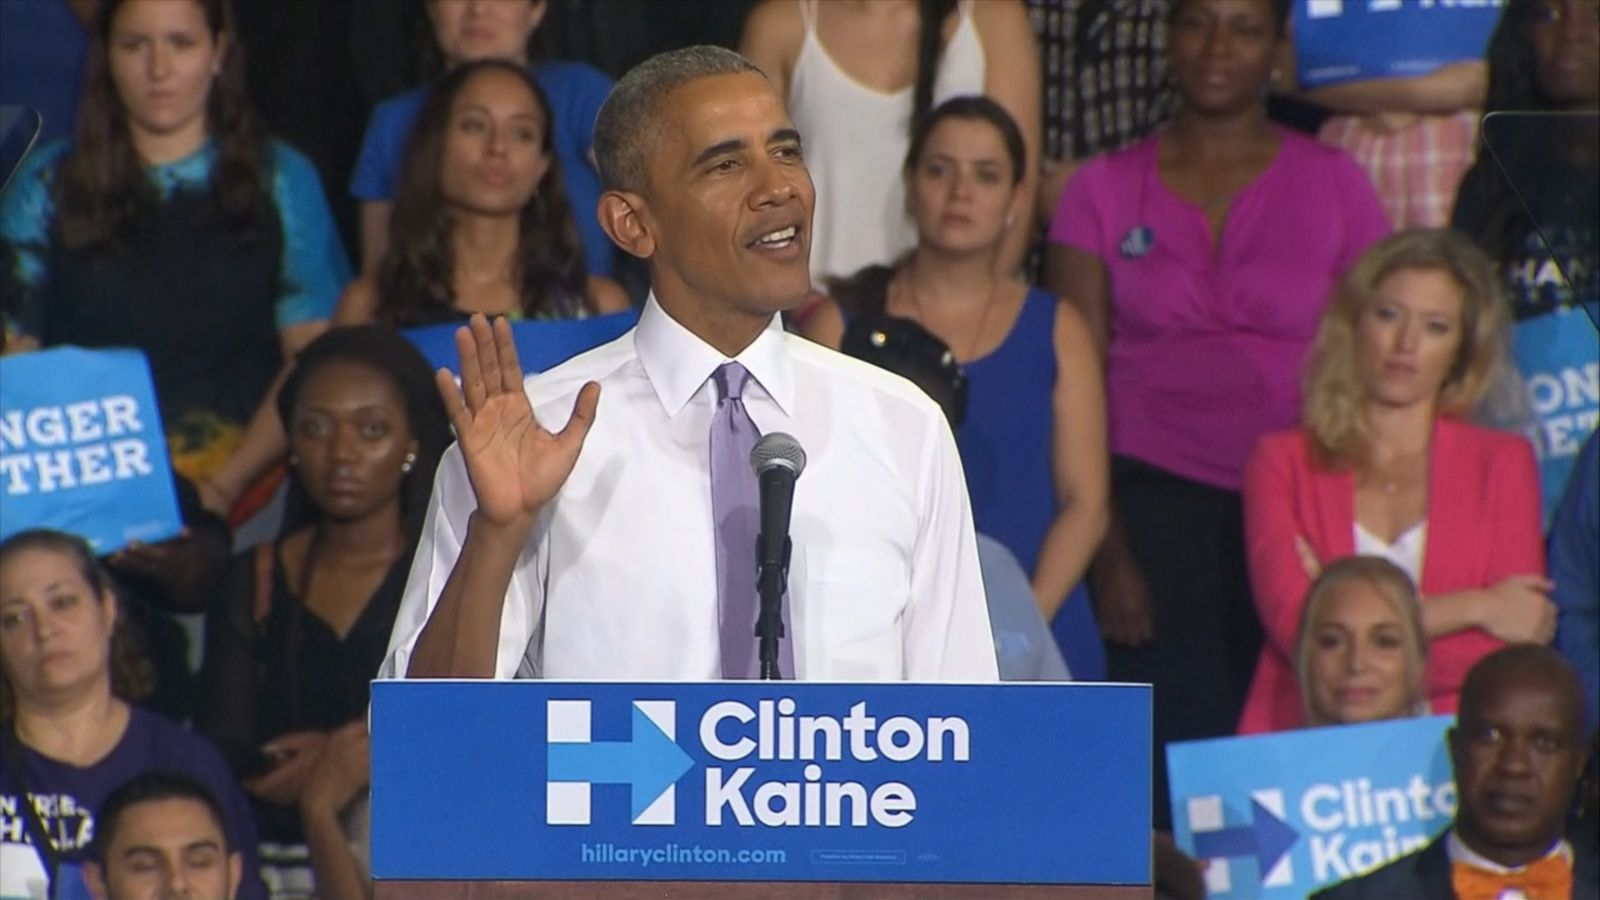 President Barack Obama was in Miami, Florida to stump for Hillary Clinton in that critical battleground state this afternoon.